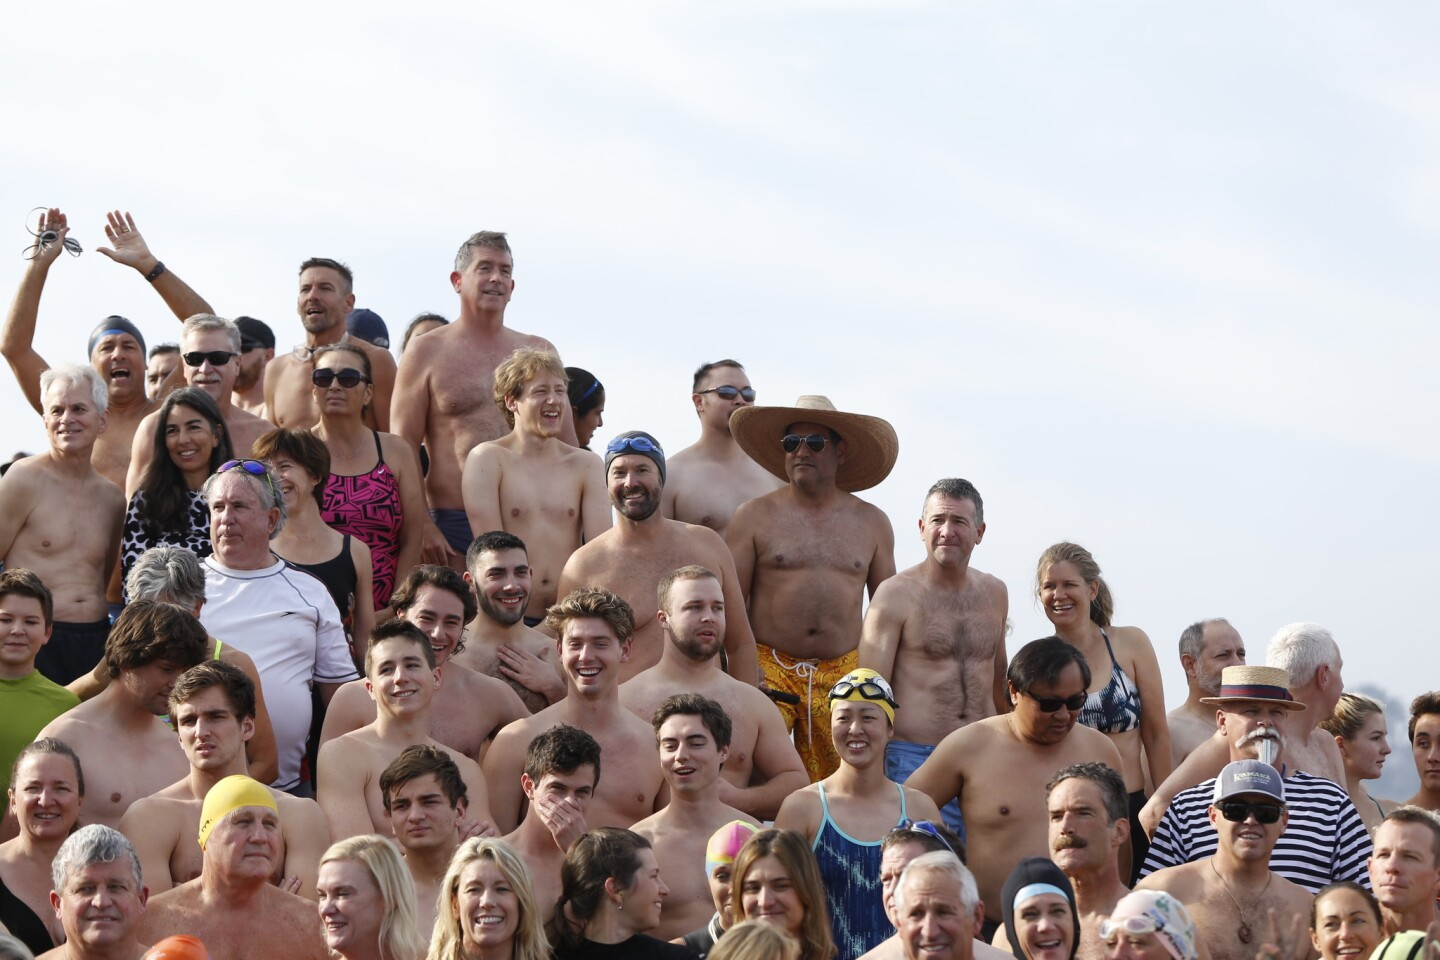 Swimmers gather for a group photo.